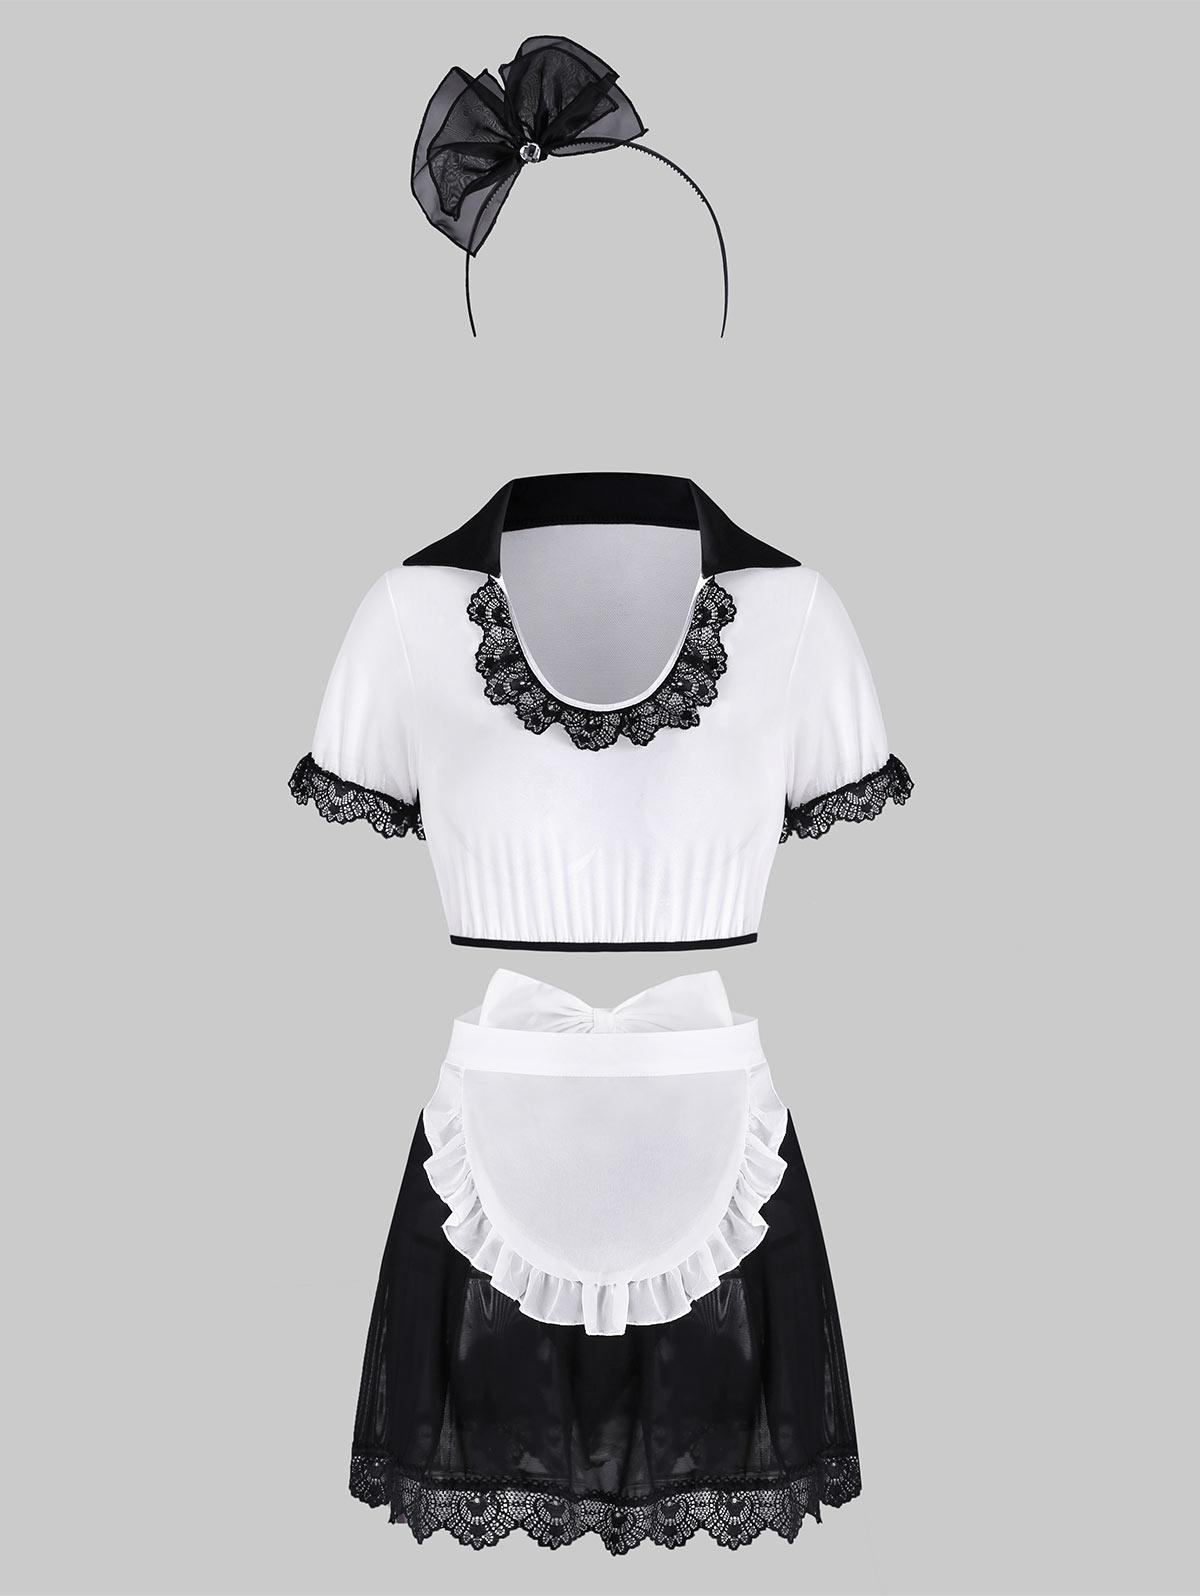 Lace Trim Sheer Mesh Lingerie Maid Costume